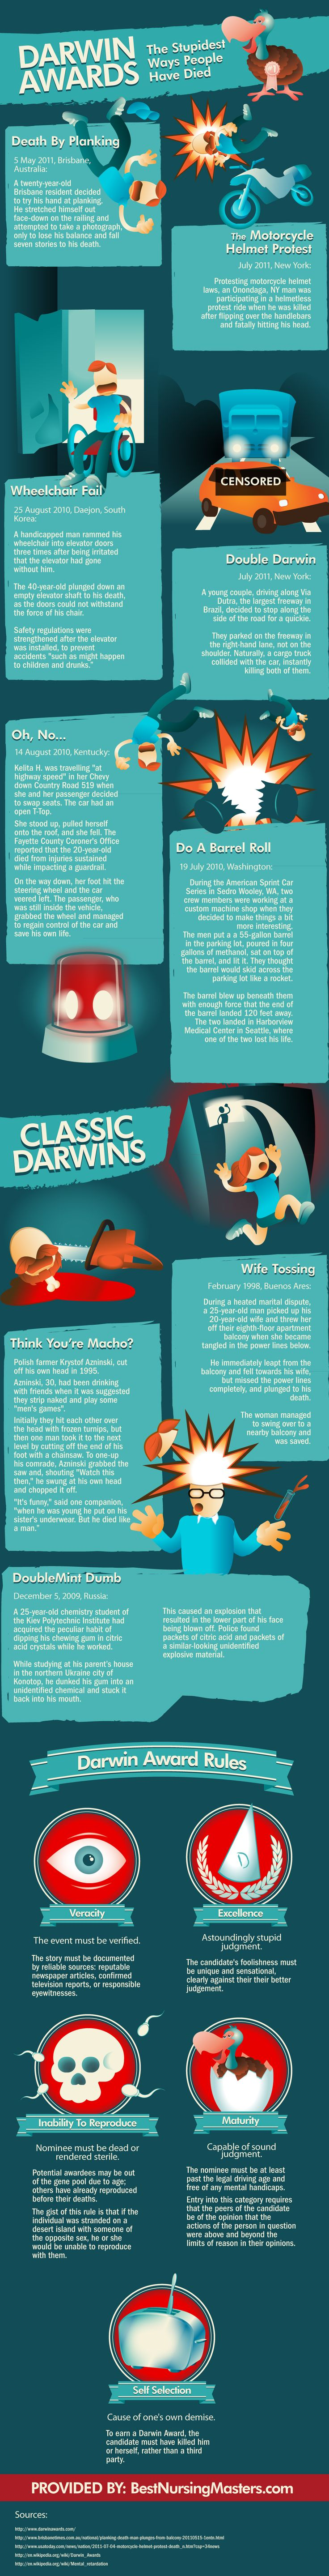 Darwin Awards - The Stupidest Ways People Have Died